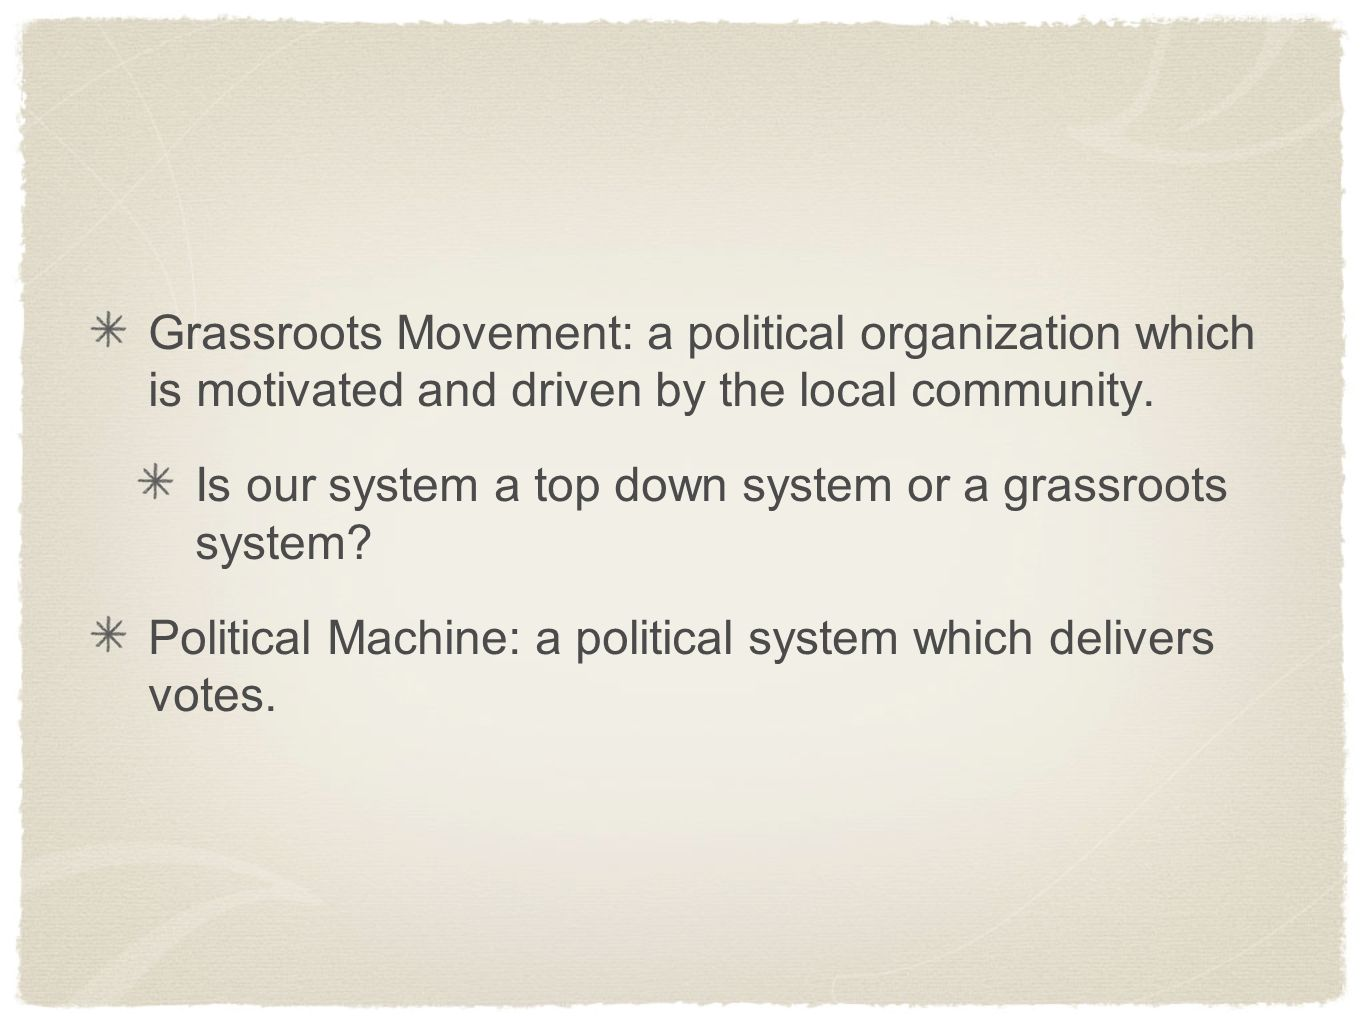 Grassroots Movement: a political organization which is motivated and driven by the local community. Is our system a top down system or a grassroots sy